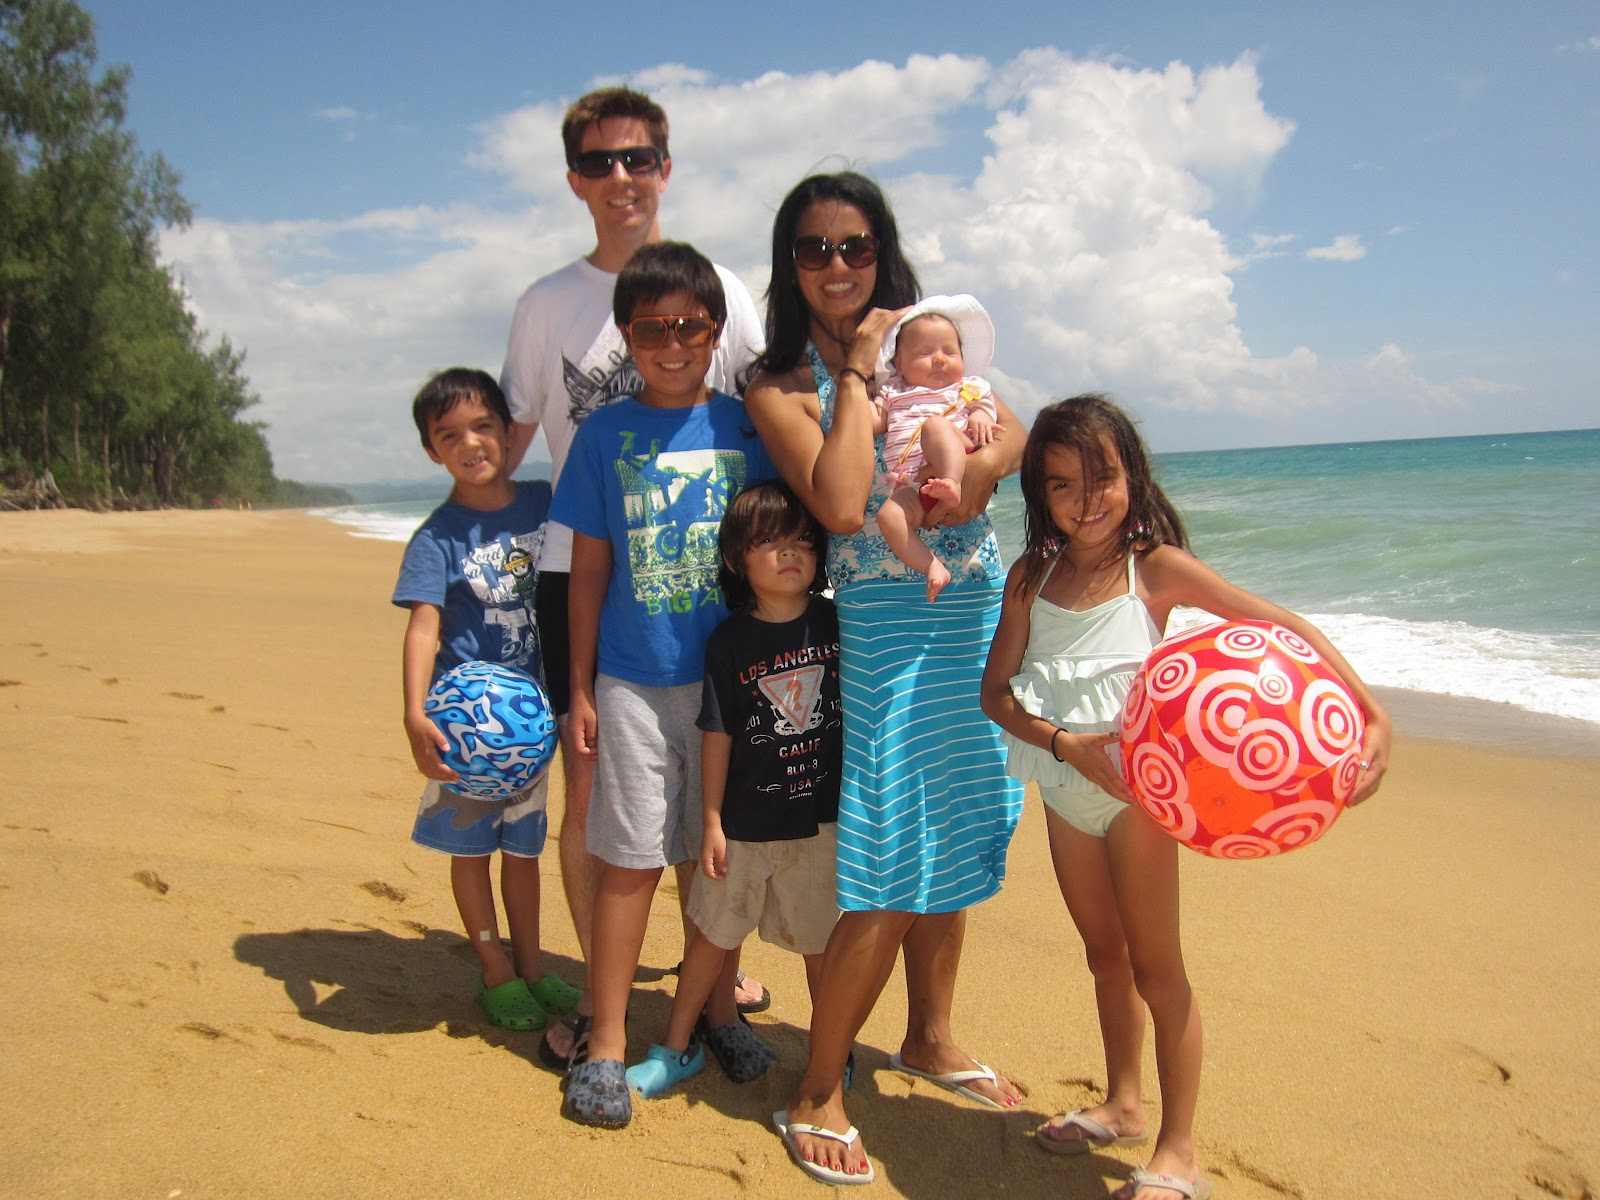 Smith Family Fun: Our family vacation